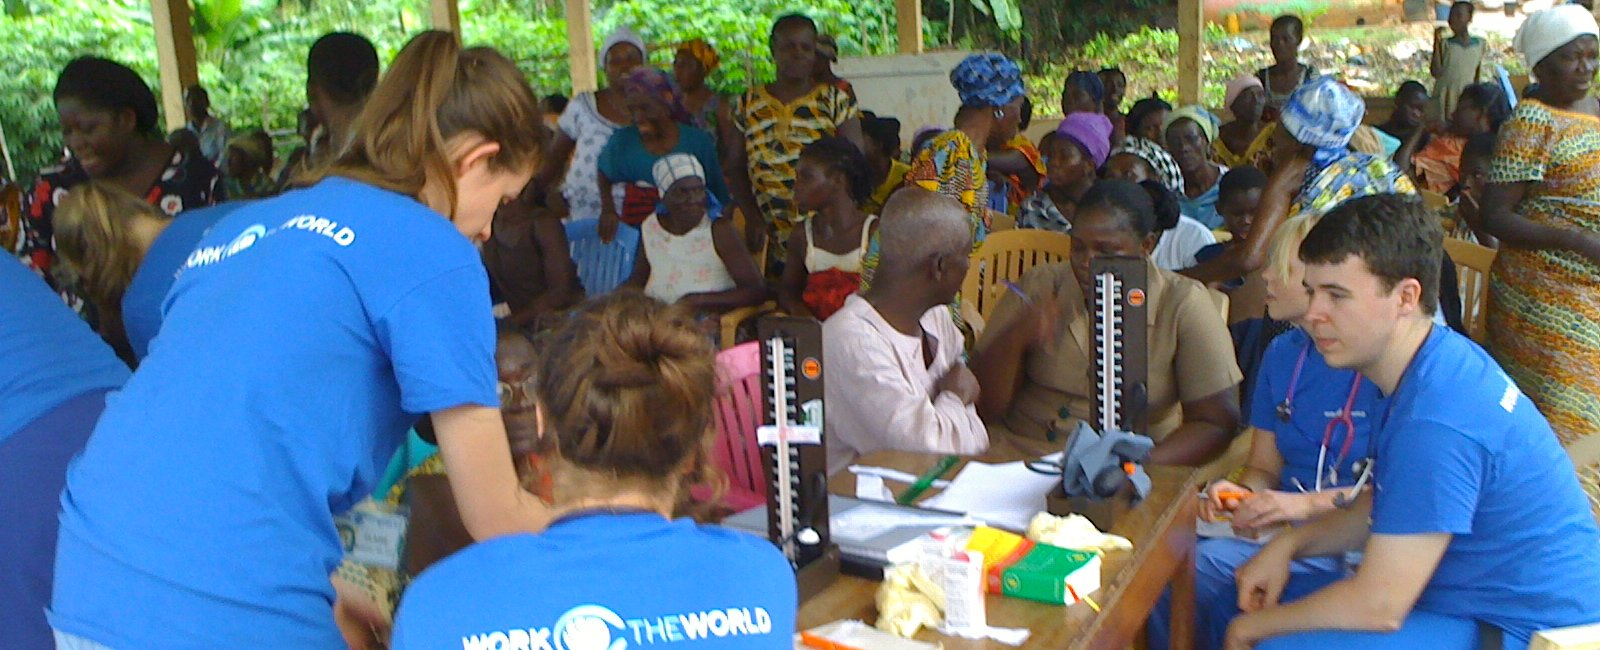 Andrew Moriarty - Medical Electives in Ghana Takoradi